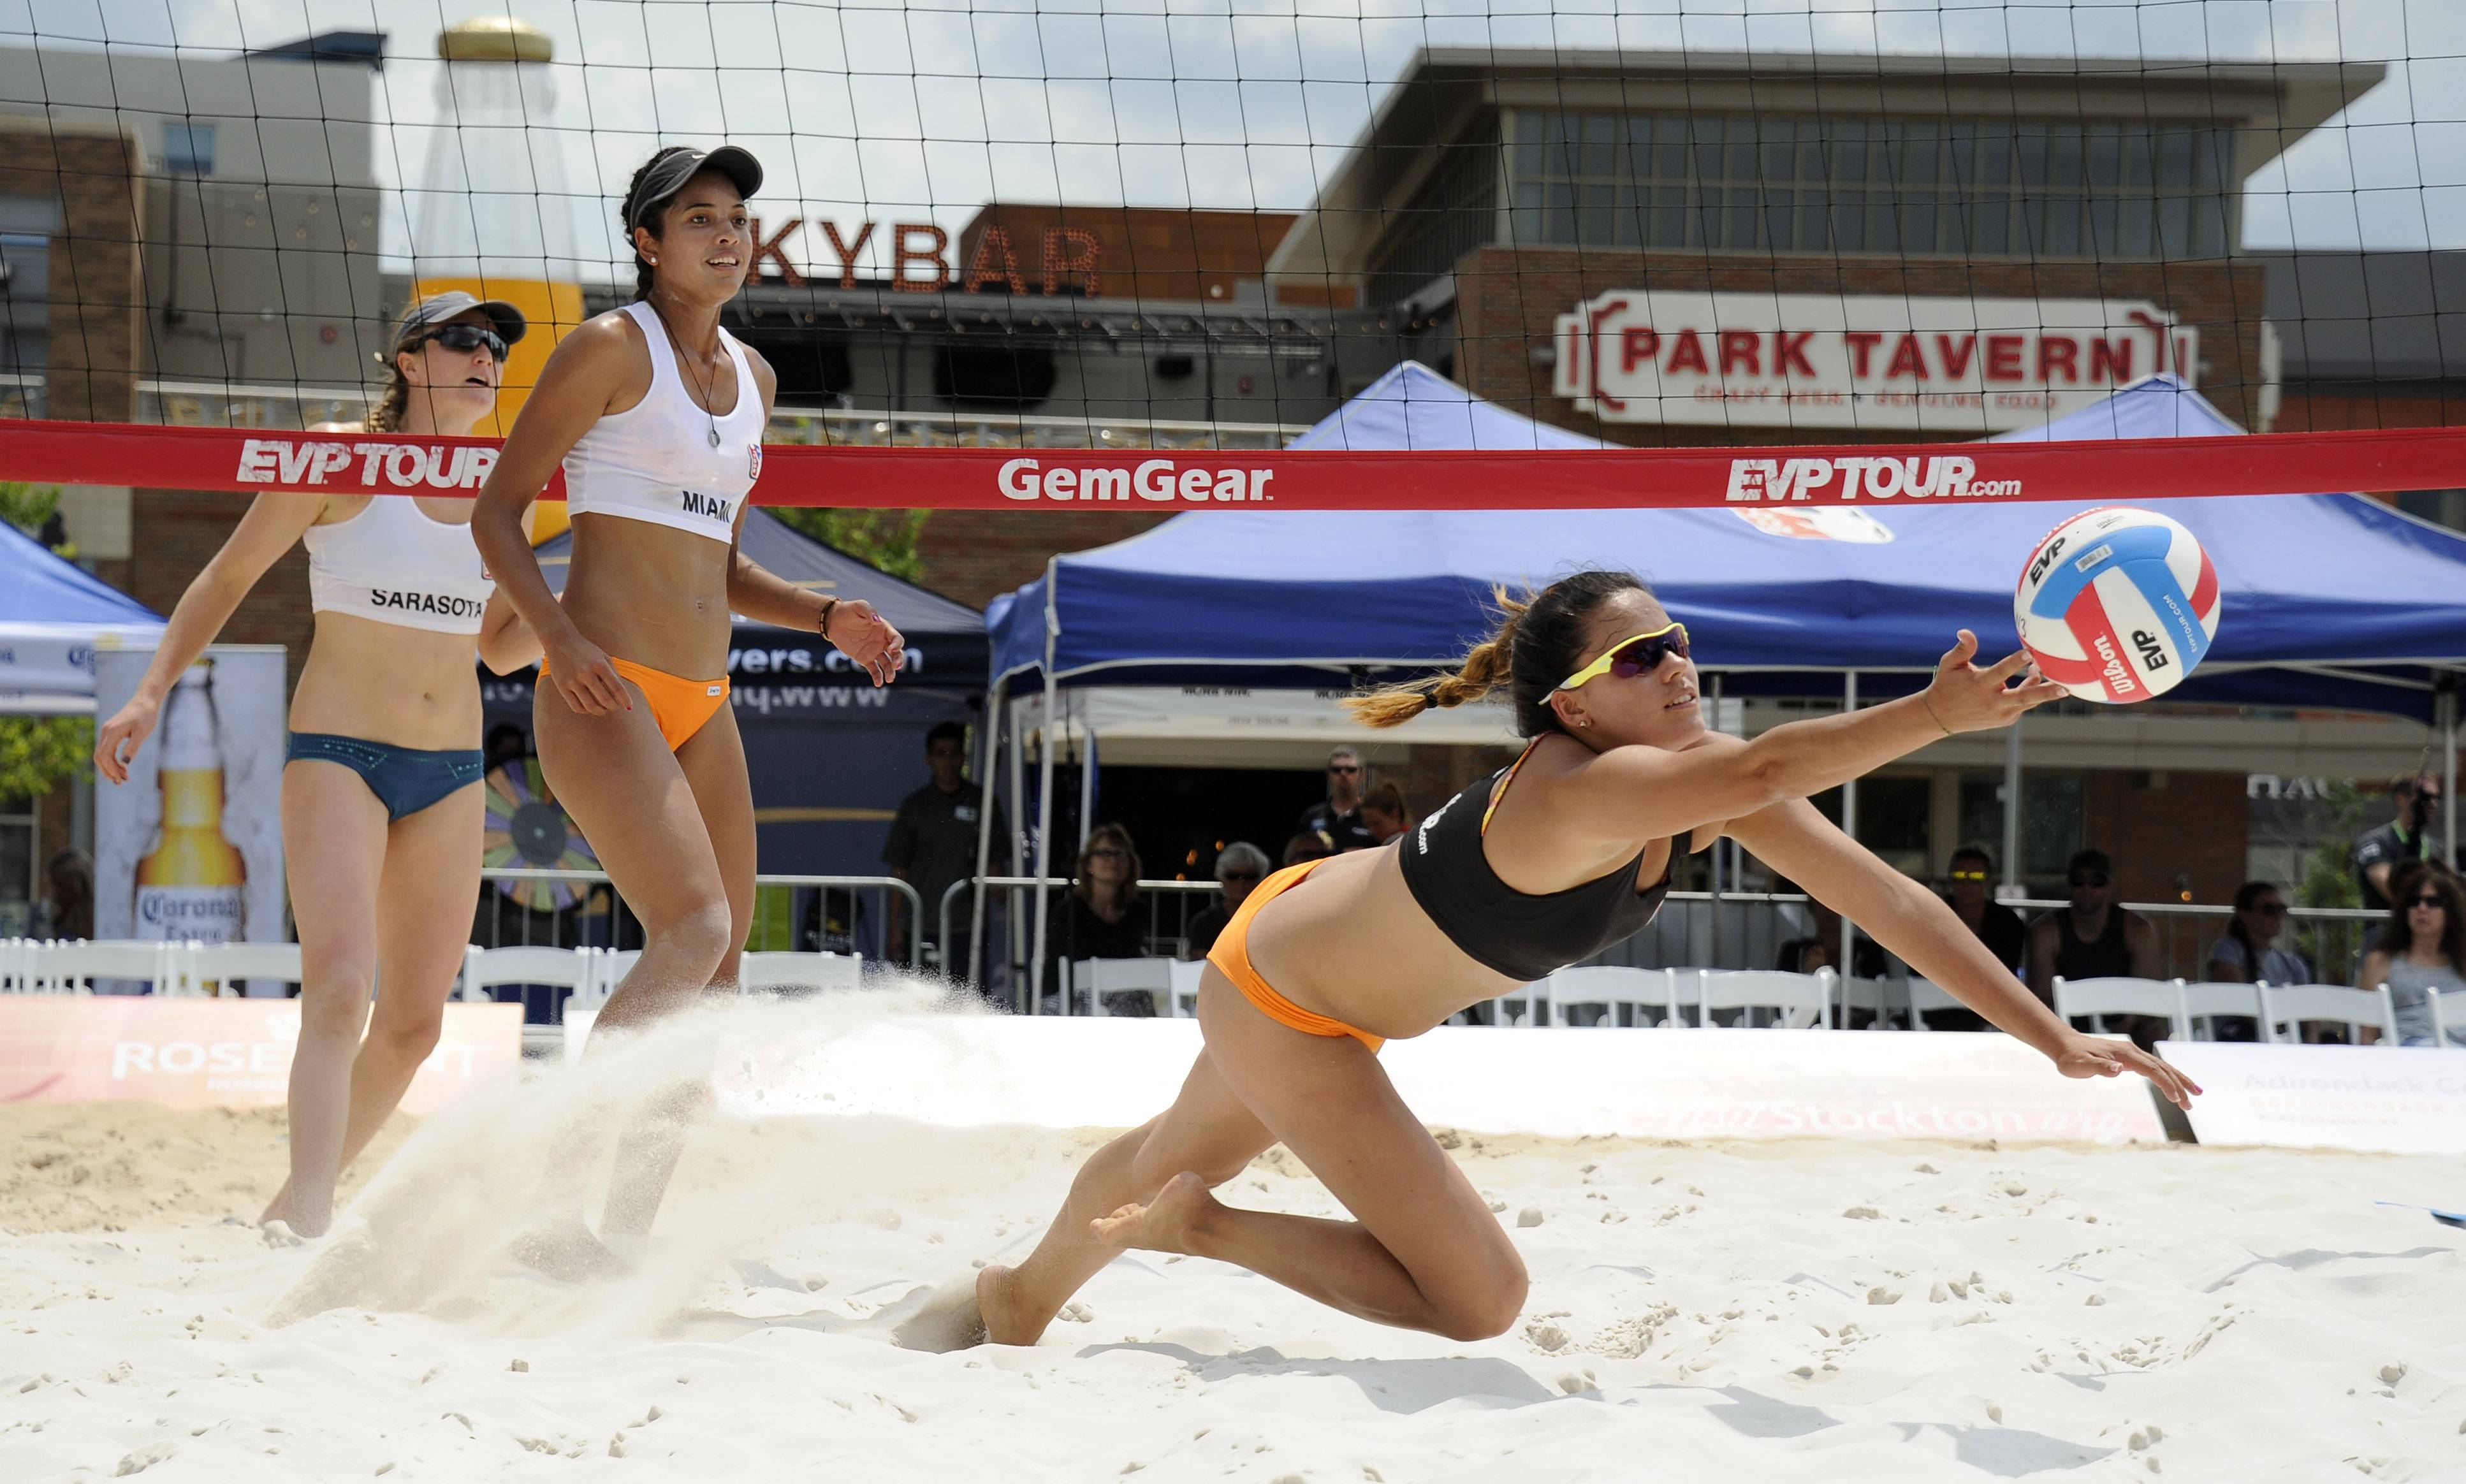 Margarita Guzman of Colombia dives for the ball during the EVP Rocks Rosemont professional beach volleyball tournament.